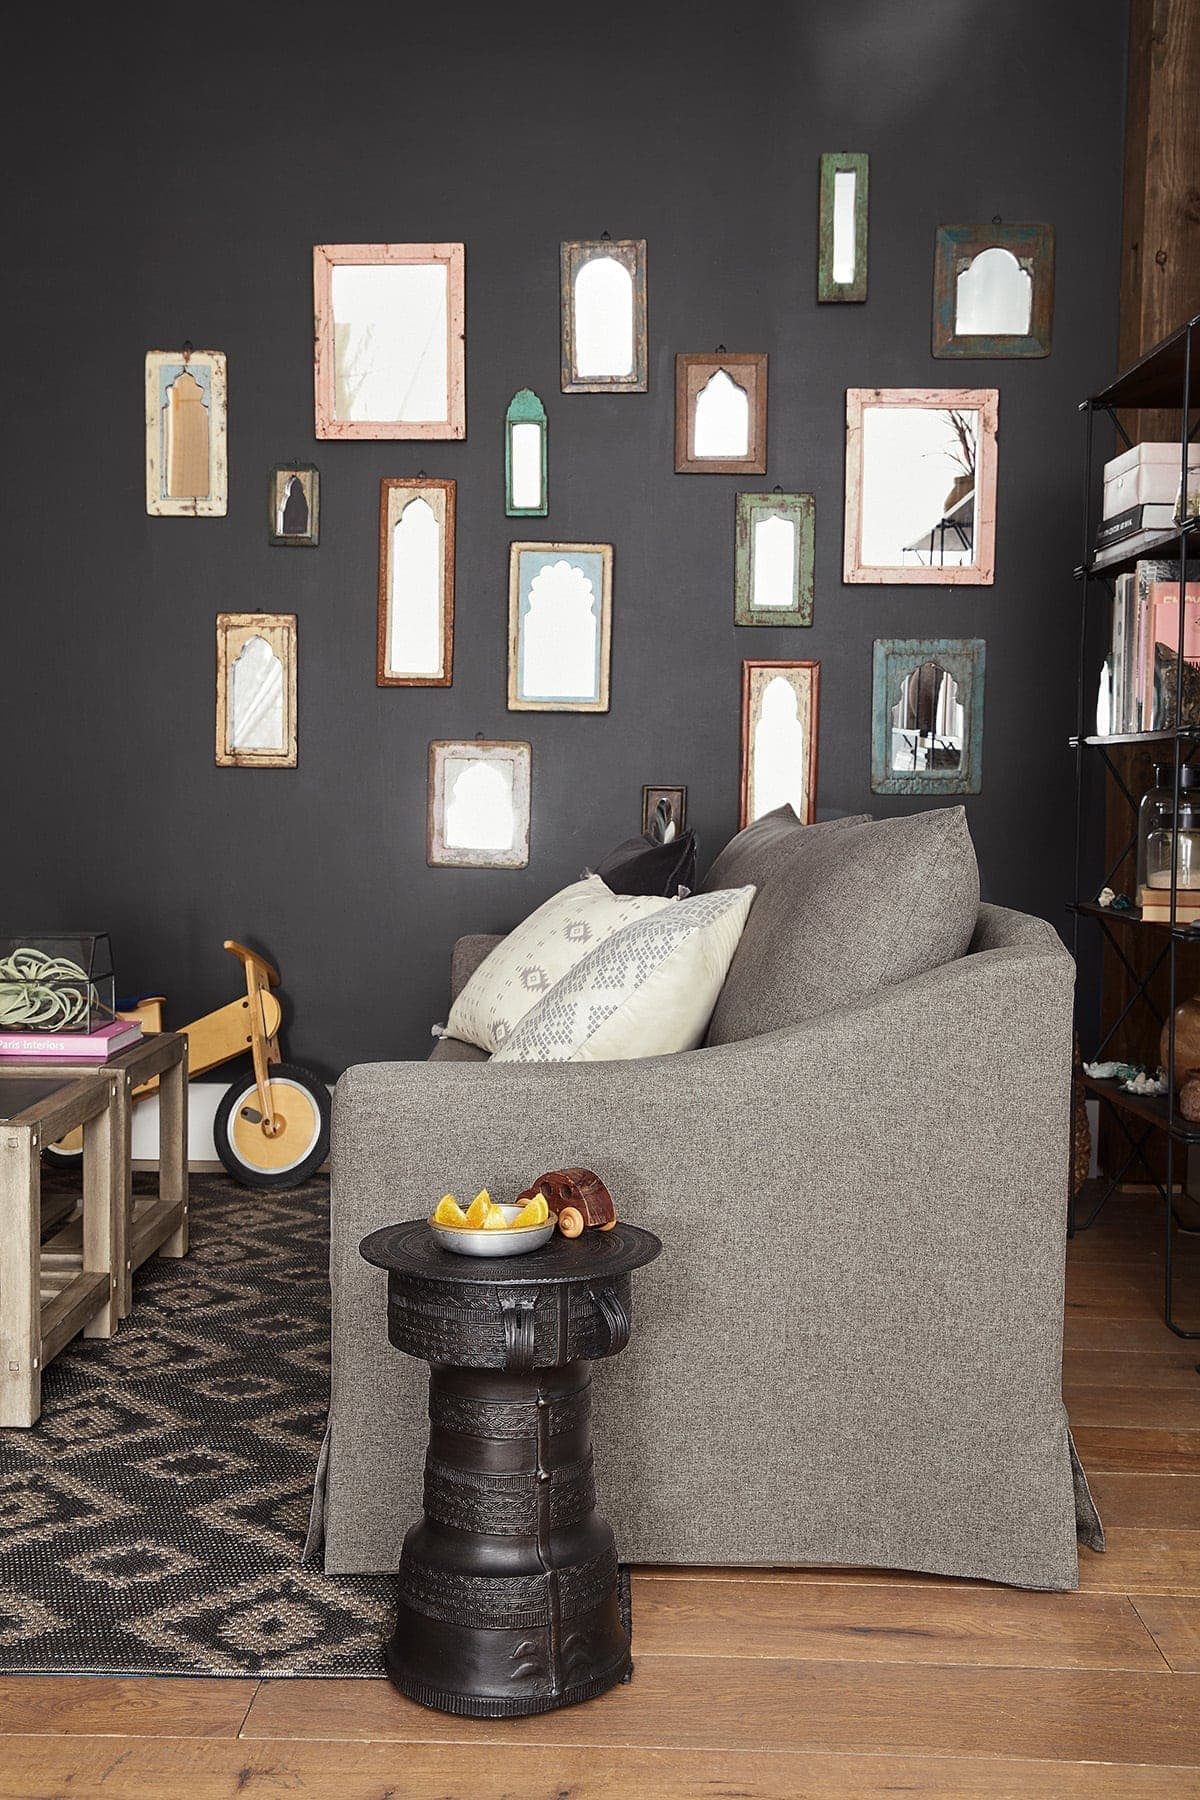 Living Room Feature Wall Design: 12 Quirky Decorating Ideas I'm Actually Begging You To Try